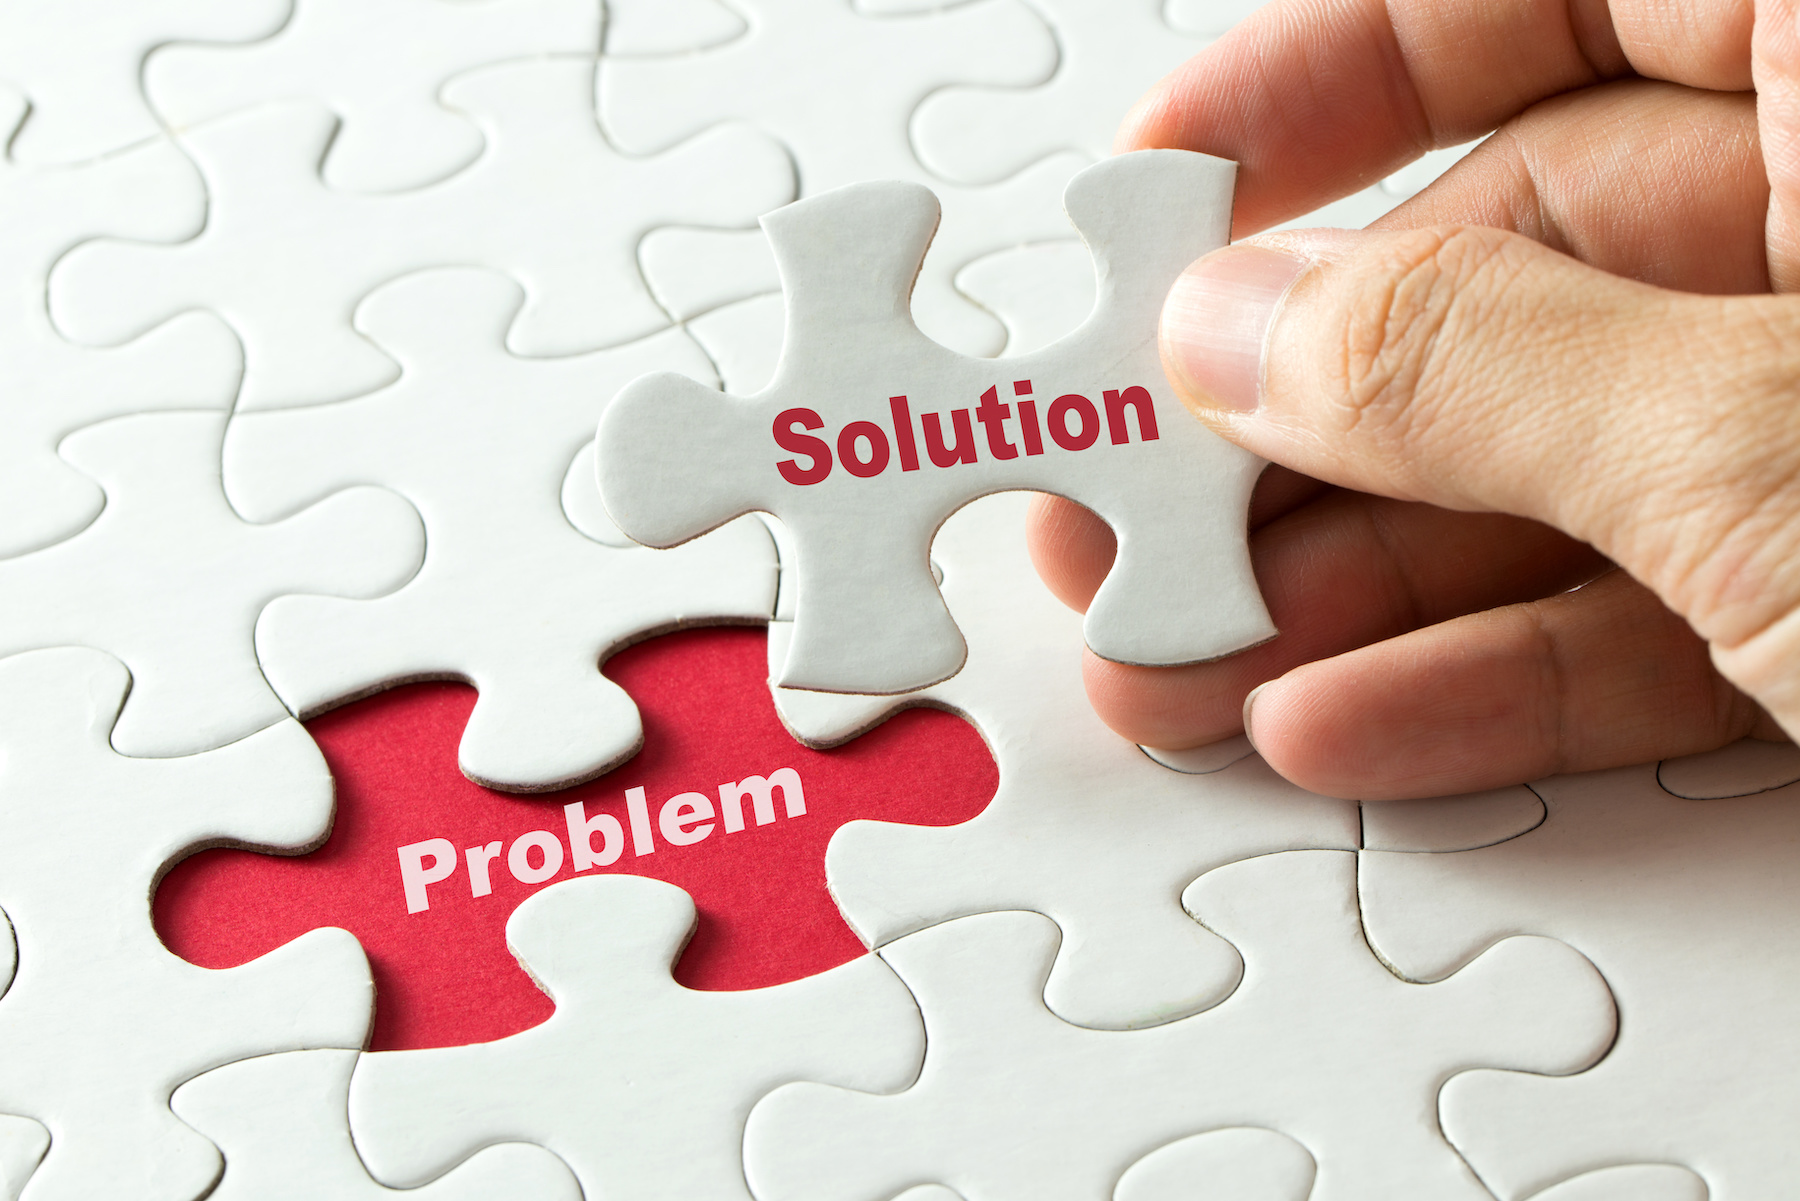 What if There are No Problems?